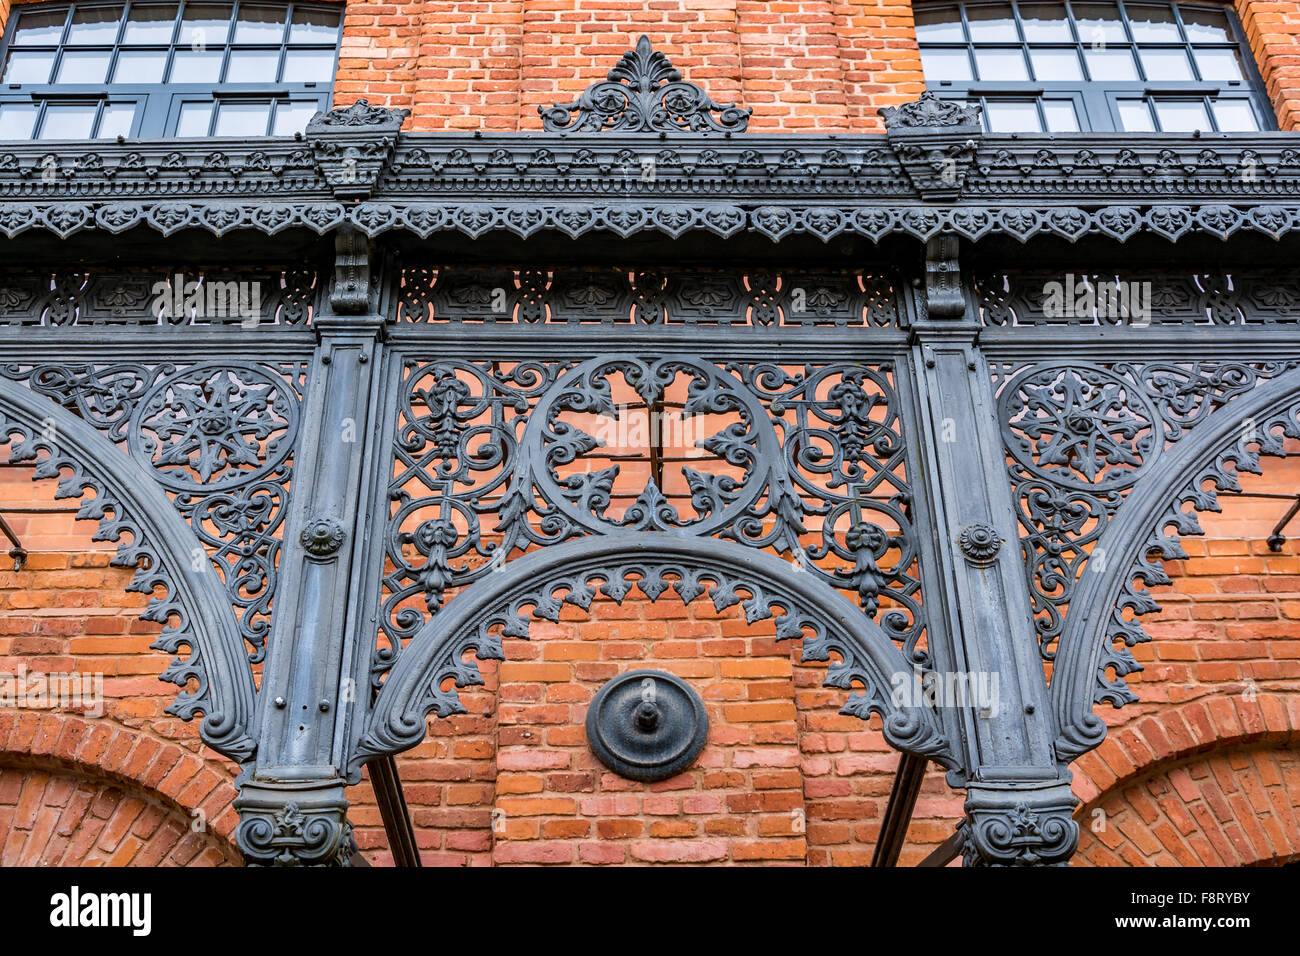 Architecural detail of a beautifully renovated old textile factory - Stock Image